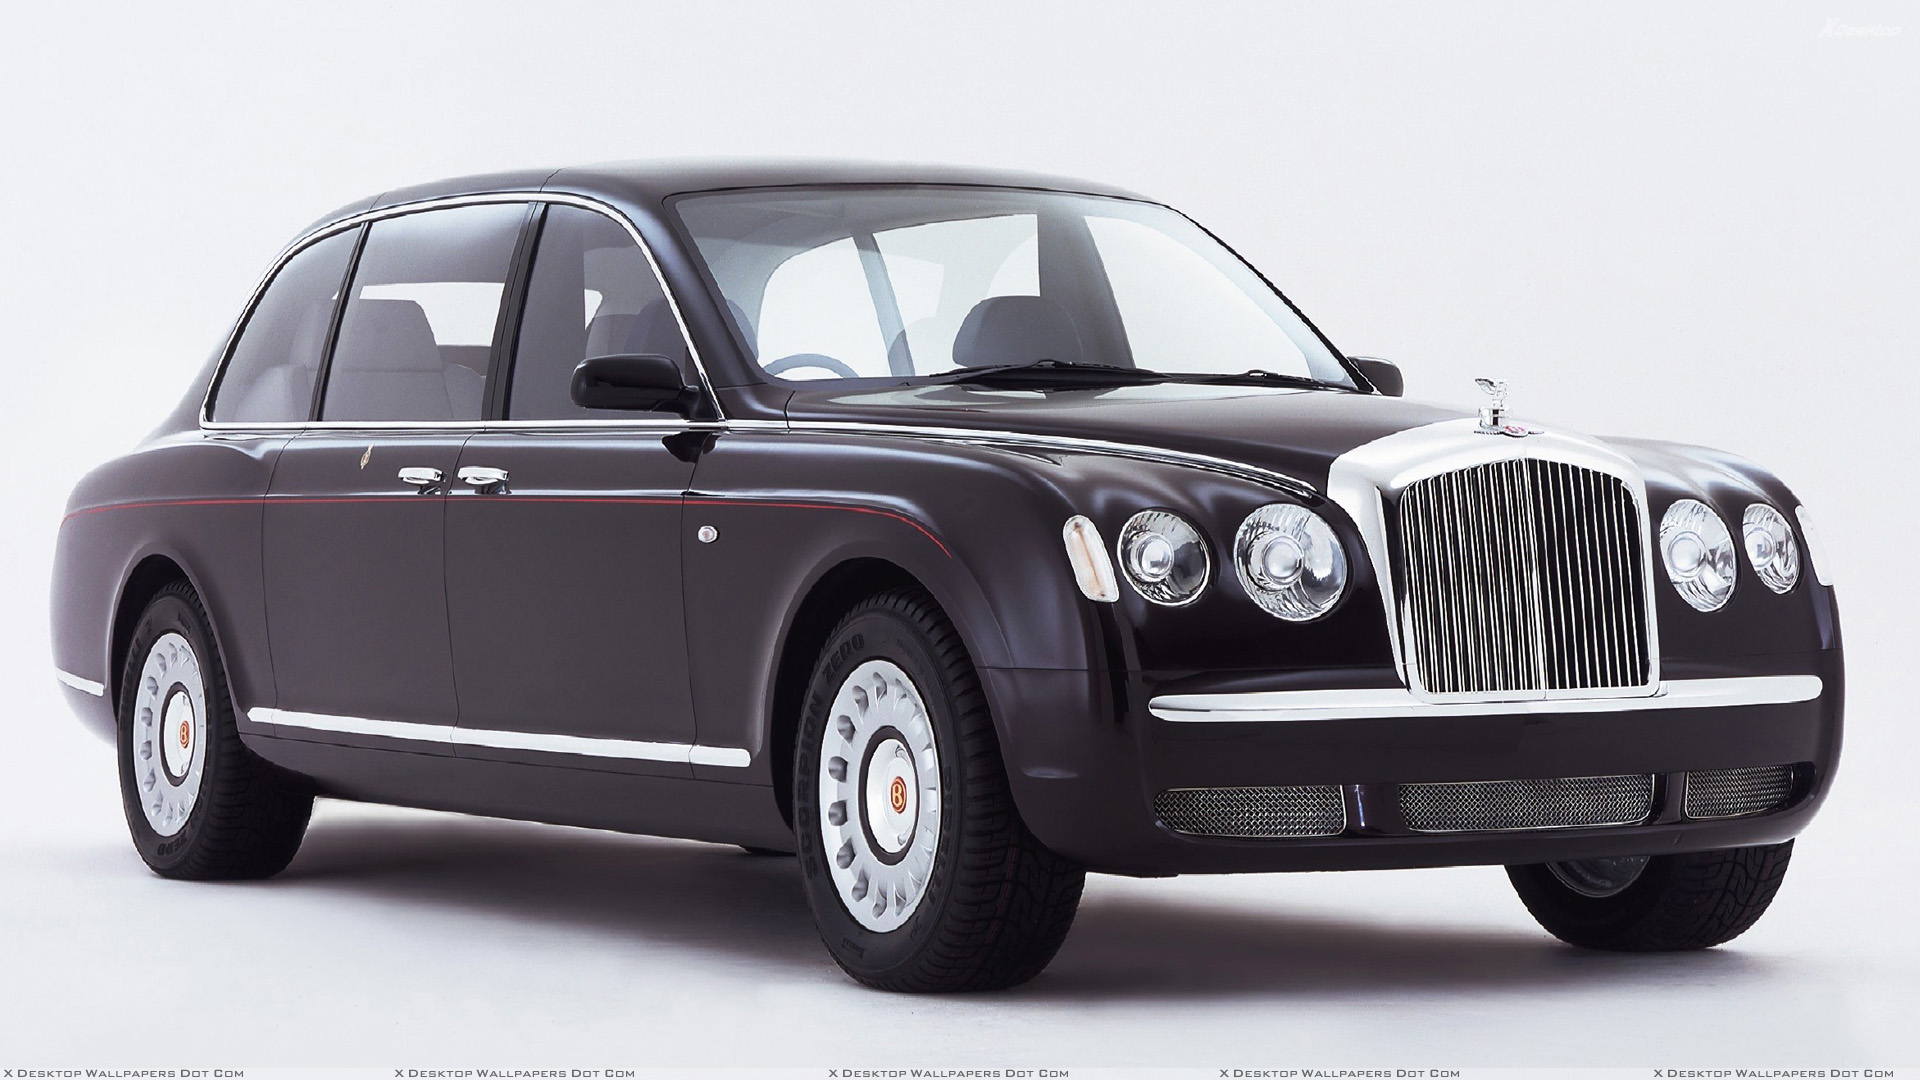 Bentley State Limousine Wallpapers Photos Images in HD 1920x1080